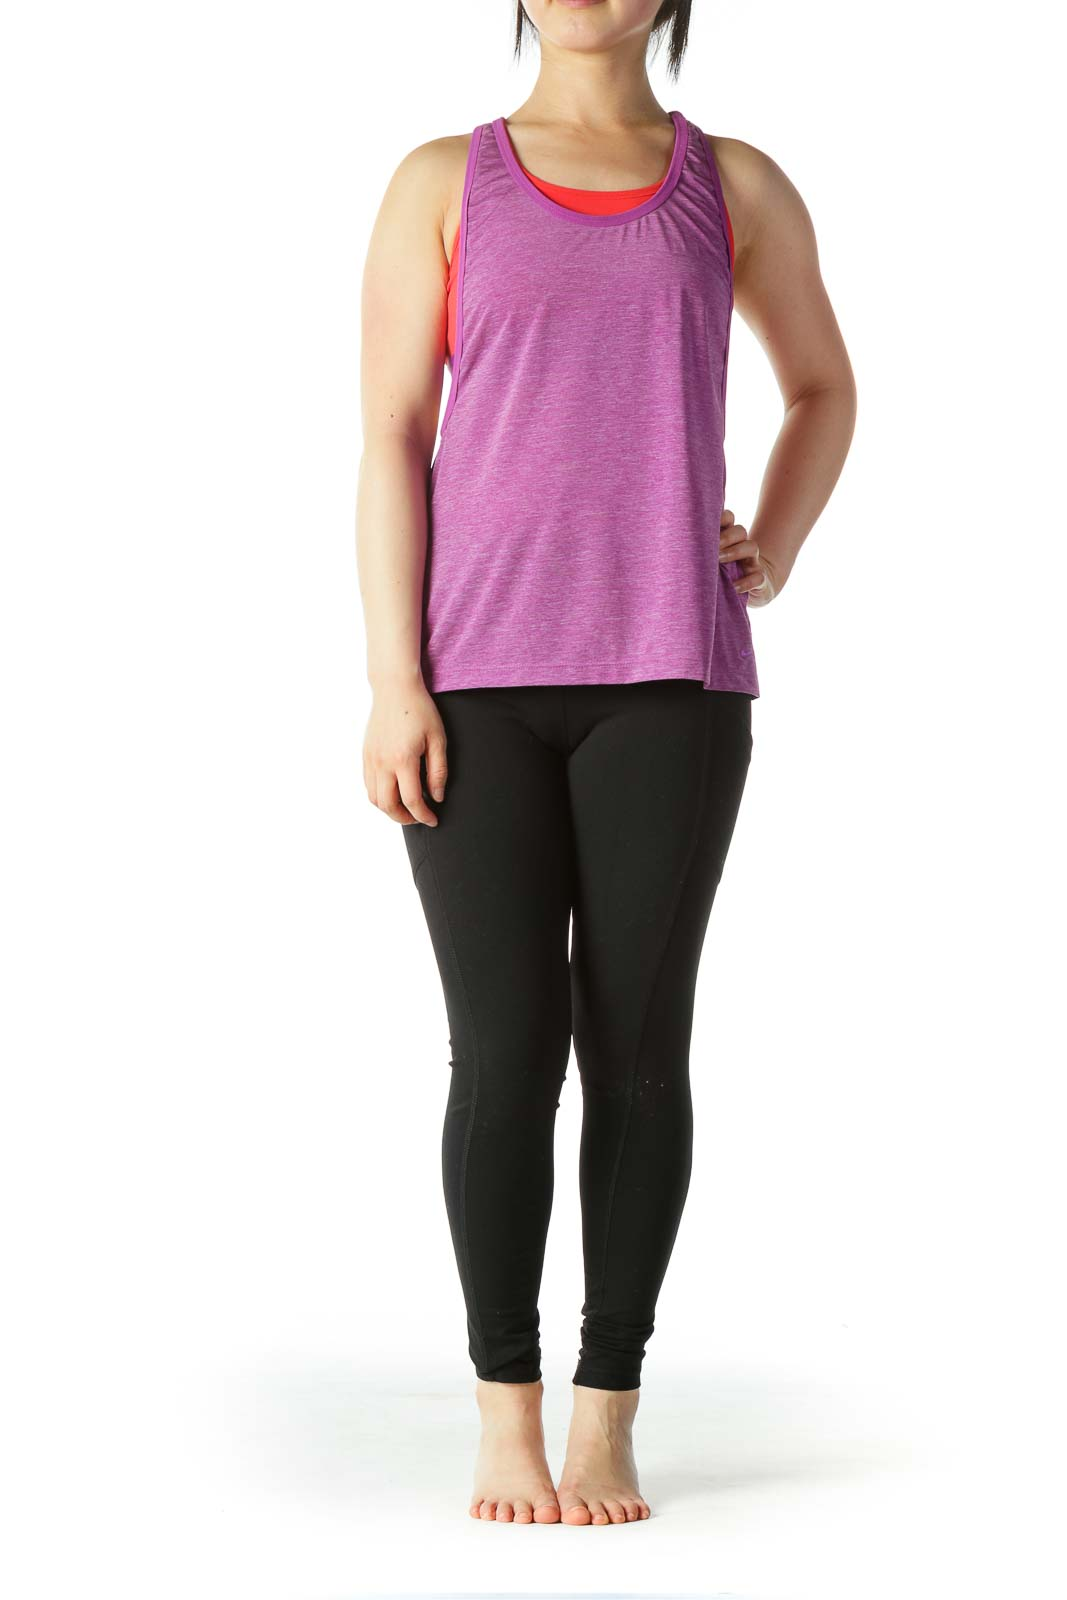 Purple Orange Sports Top with Built-In Bra